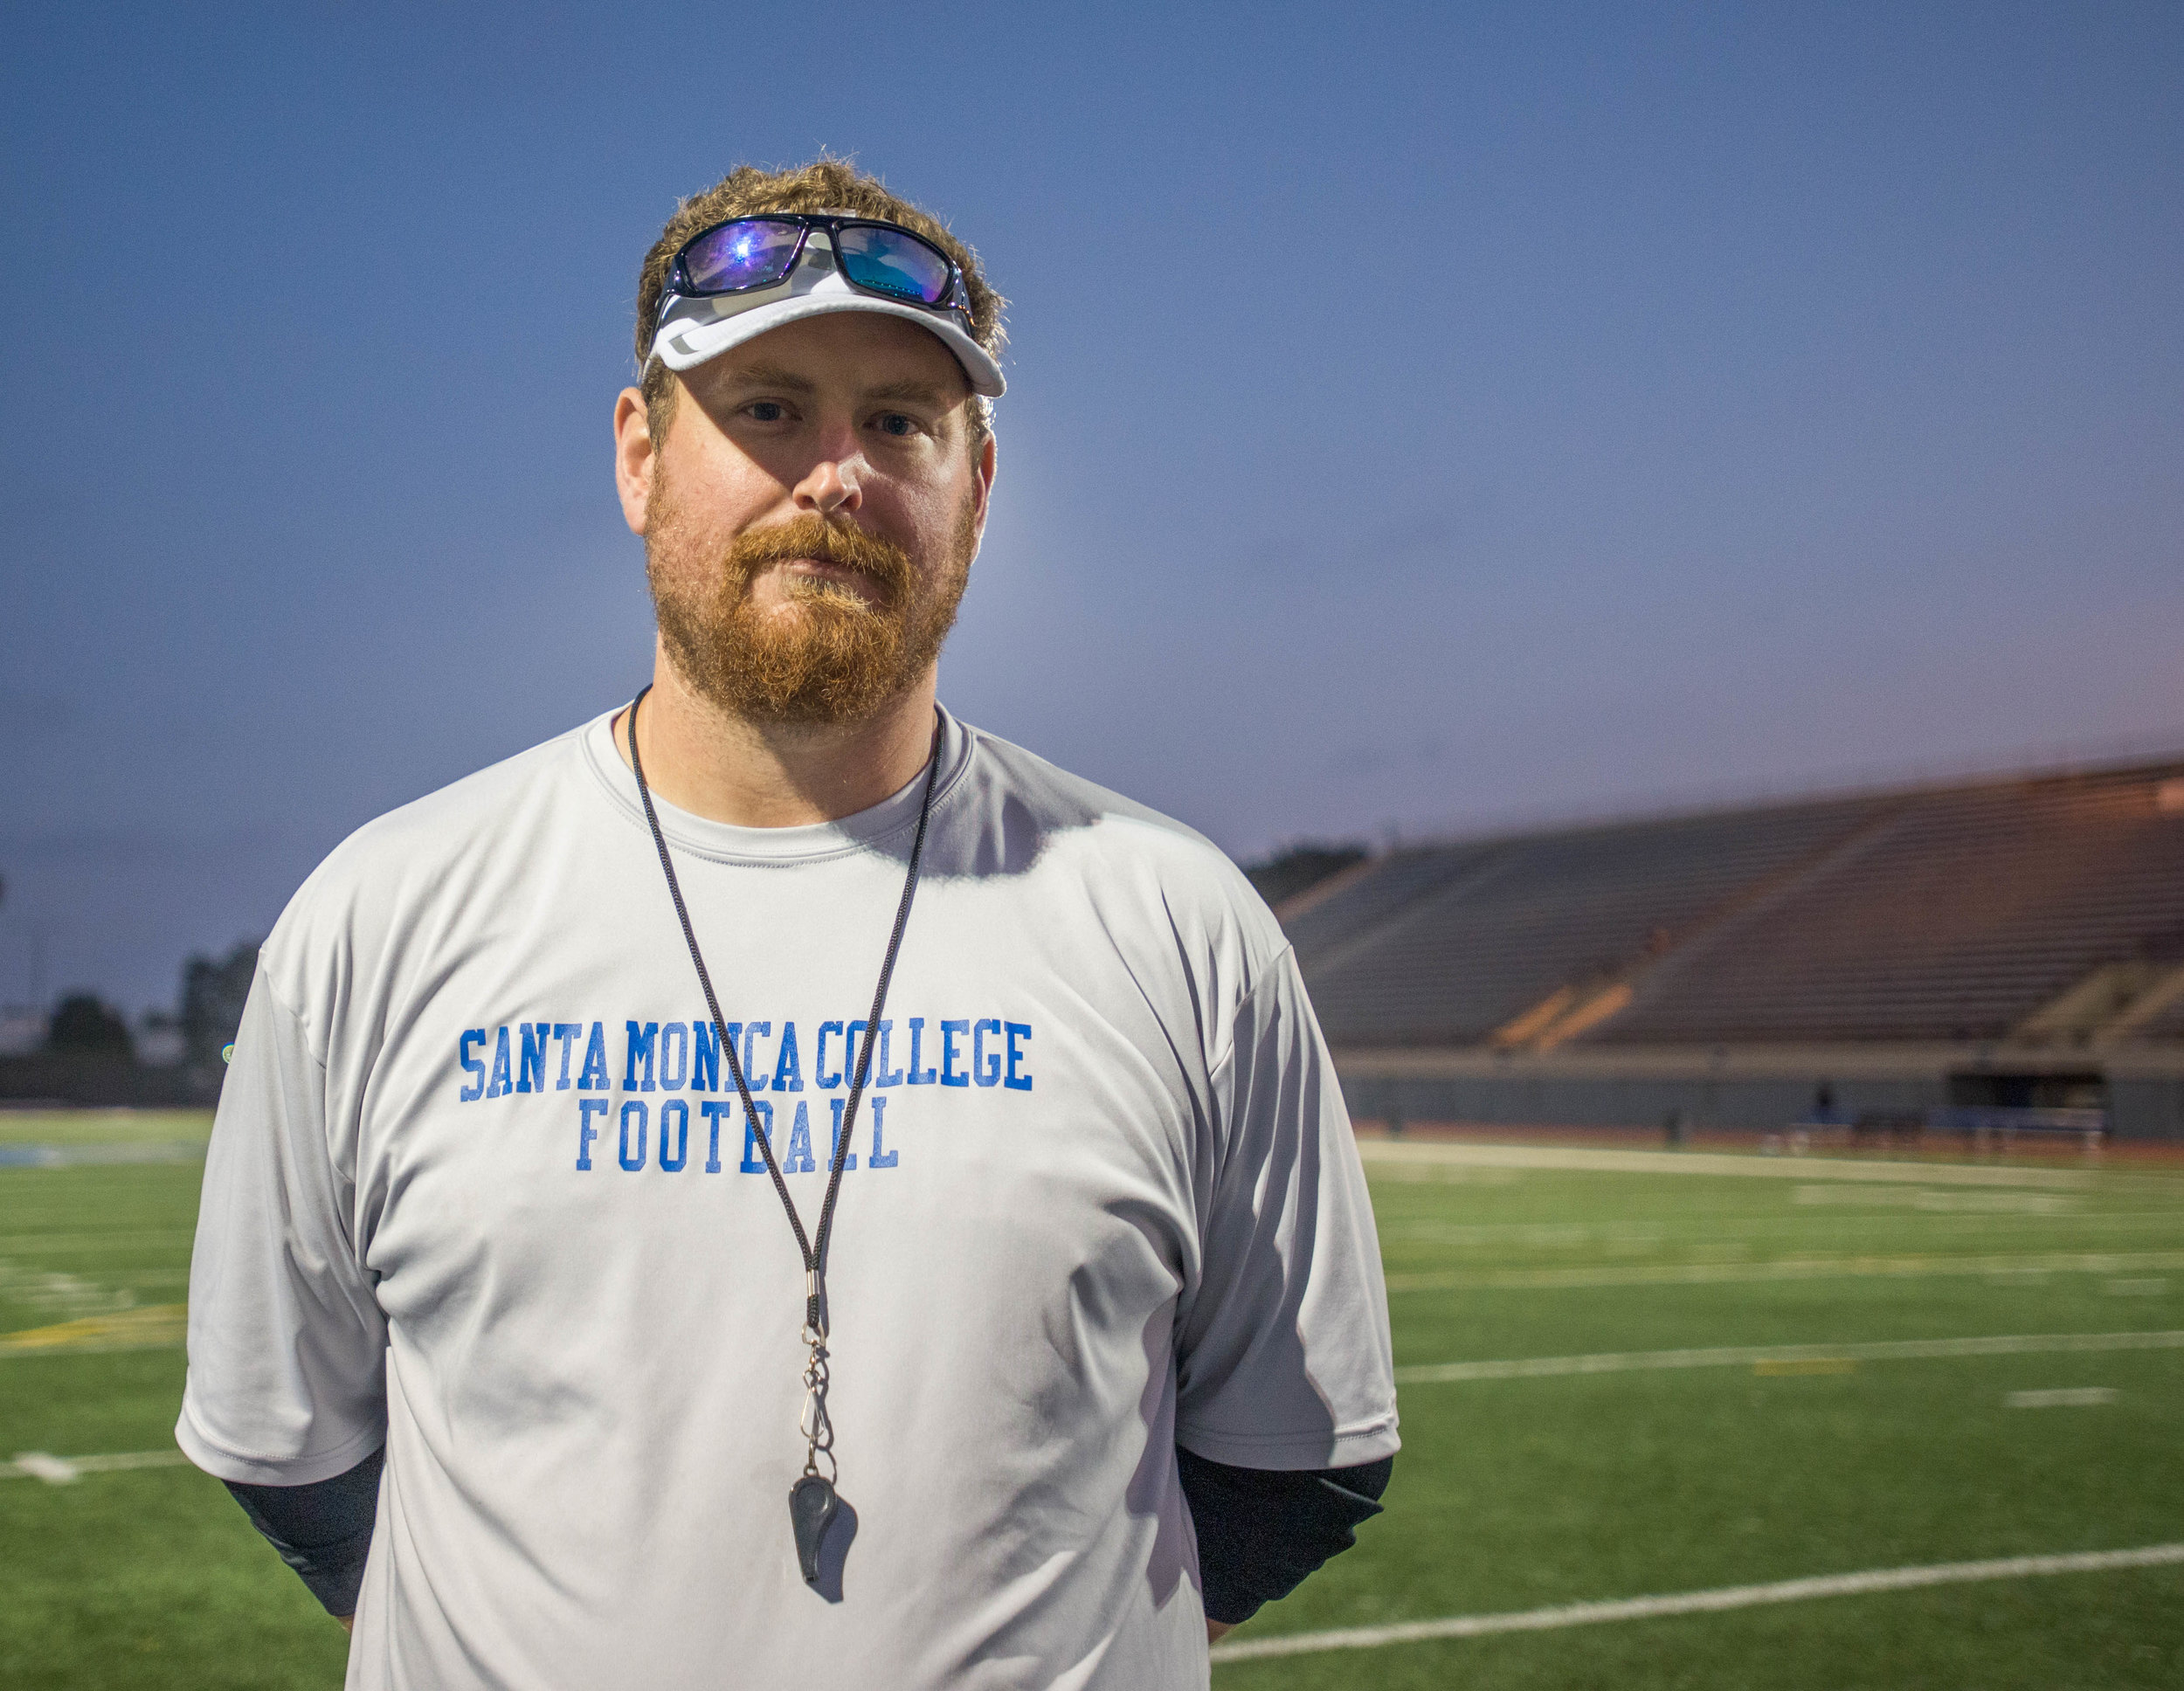 Santa Monica College Football Coach Kelly Ledwith poses for a portrait at the Corsair Field. (Josue Martinez)